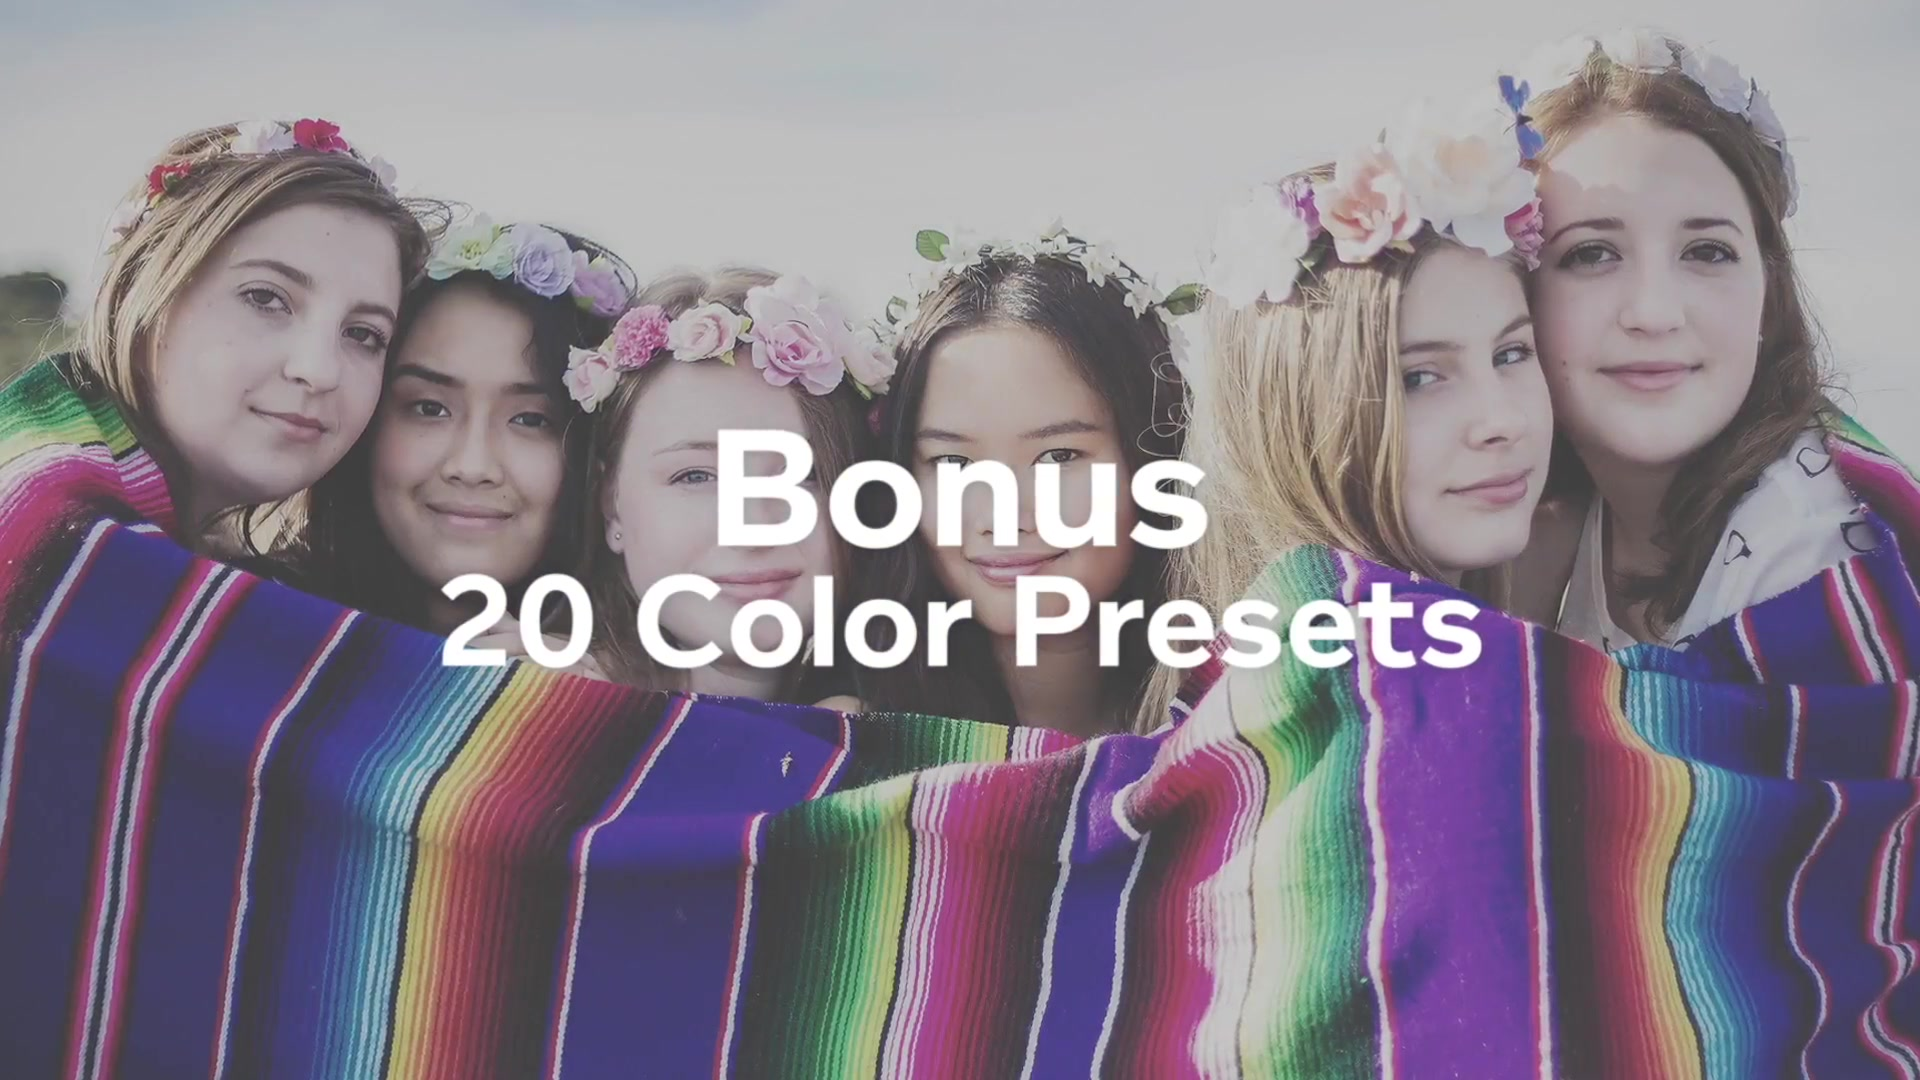 FCPX 270+ Transitions and Sound FX - Download Videohive 21589524